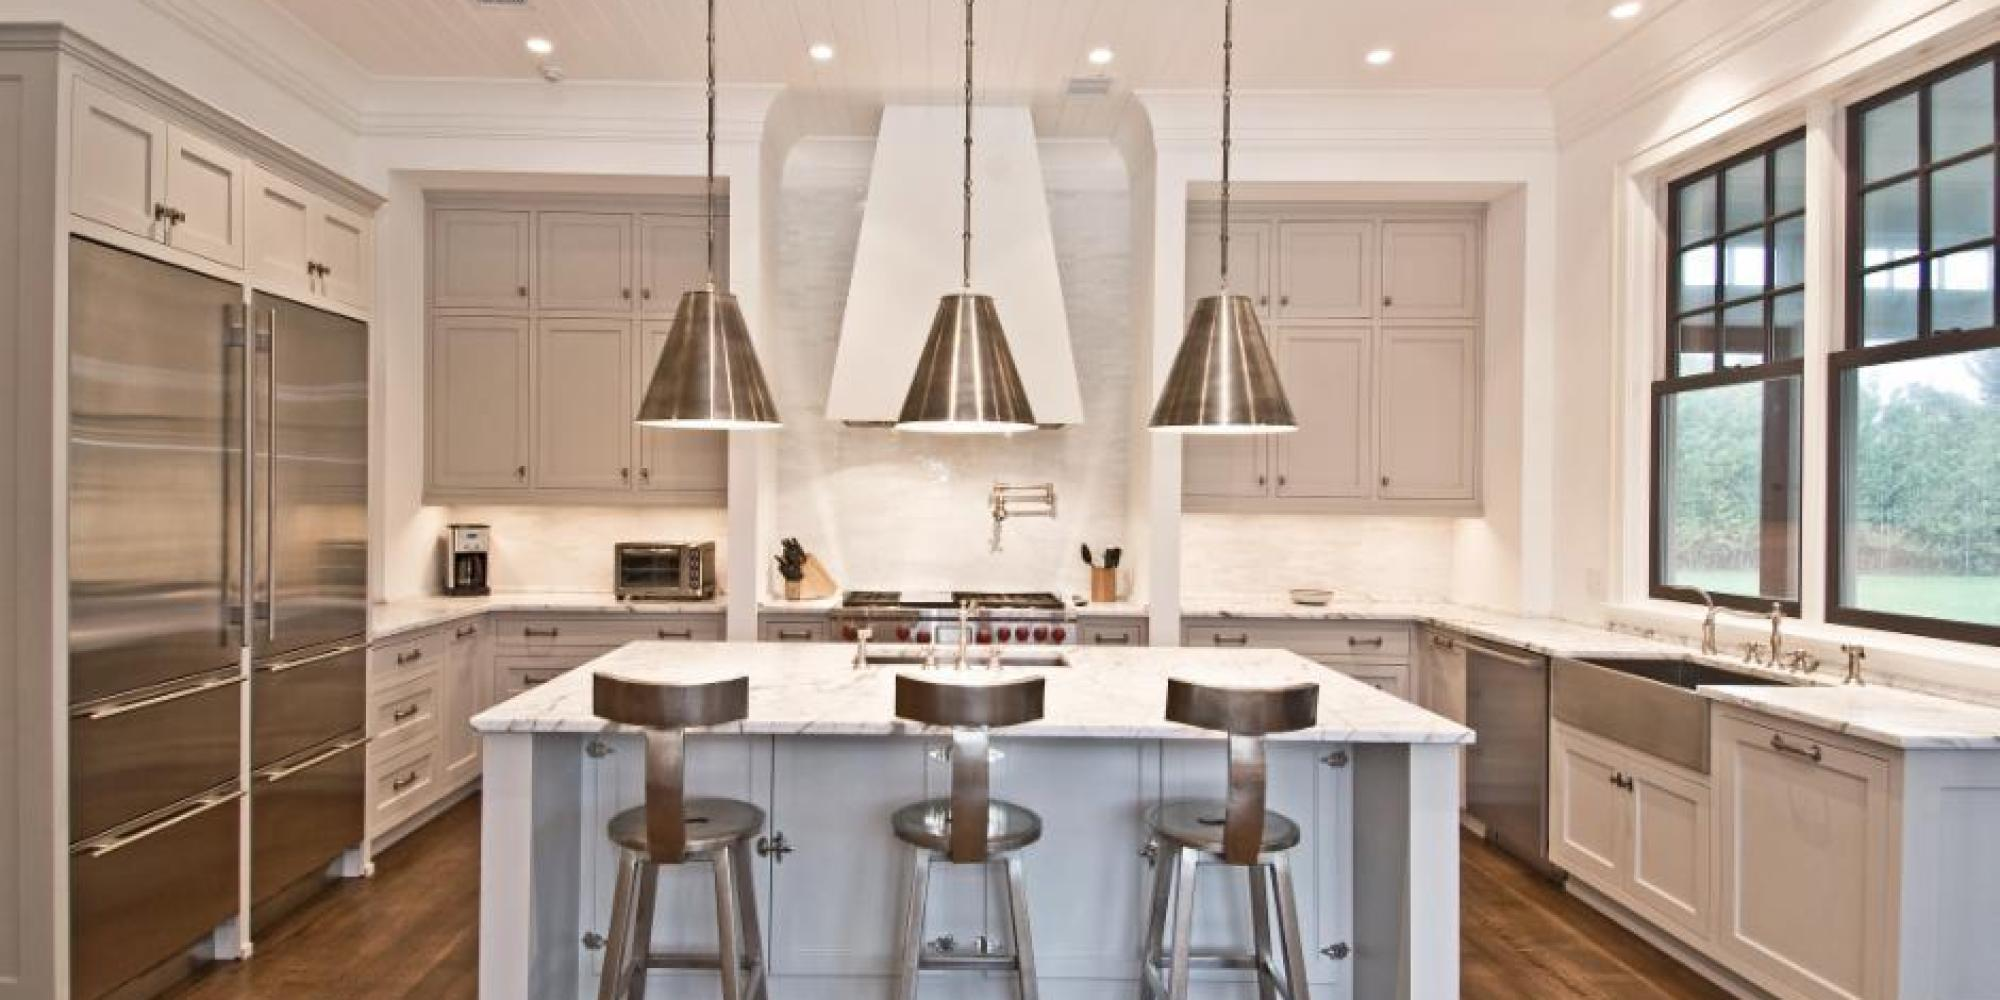 Kitchen Paint Colors With White Cabinets Entrancing The Best Paint Colors For Every Type Of Kitchen  Huffpost Inspiration